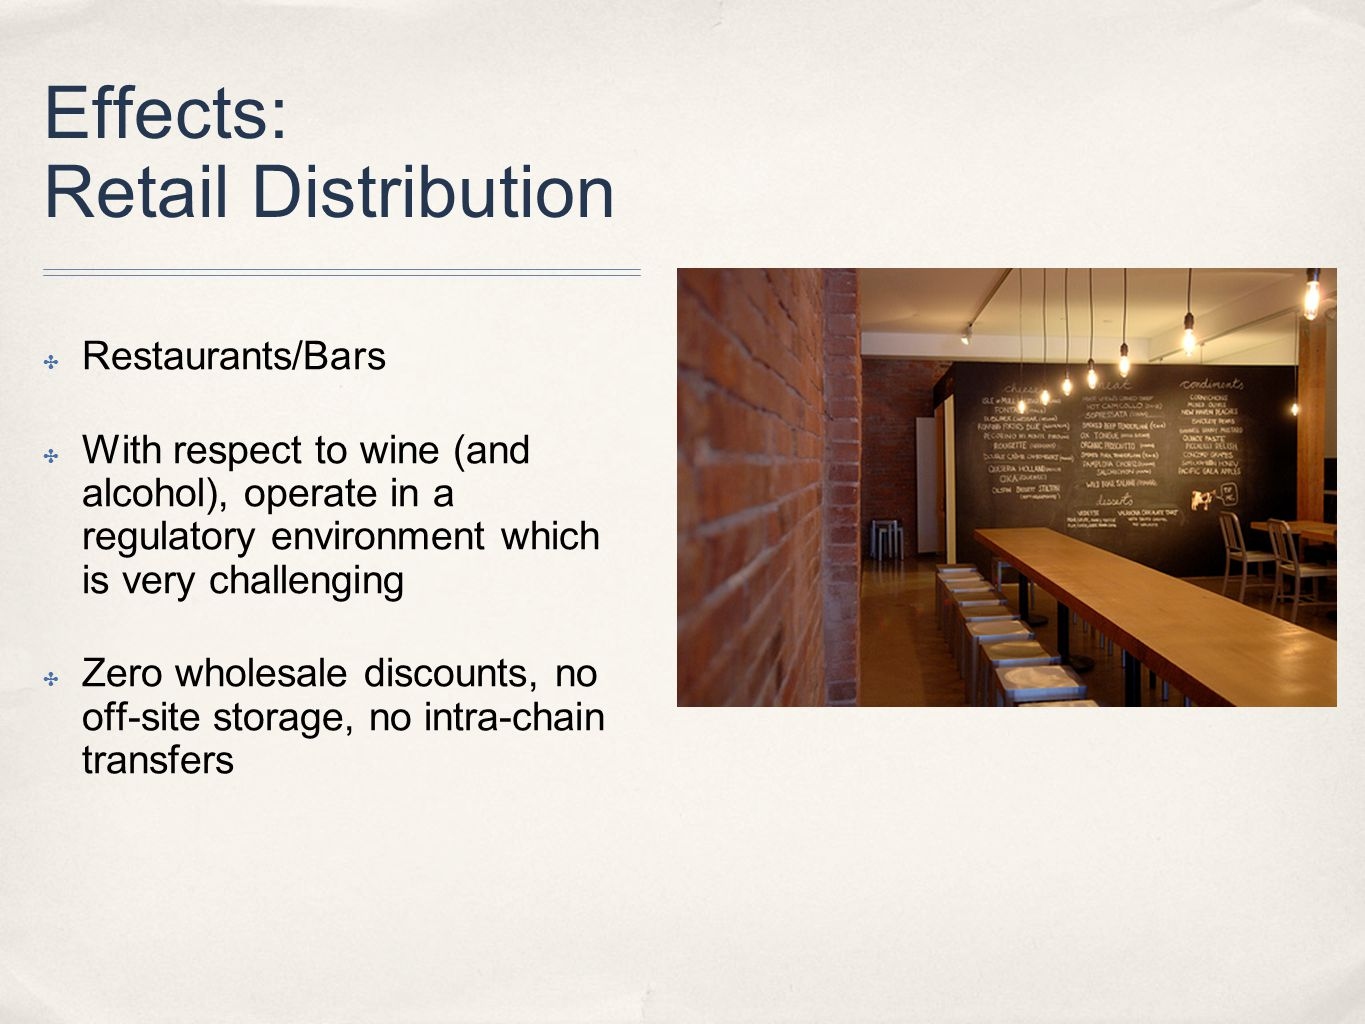 Effects: Retail Distribution ✤ Restaurants/Bars ✤ With respect to wine (and alcohol), operate in a regulatory environment which is very challenging ✤ Zero wholesale discounts, no off-site storage, no intra-chain transfers